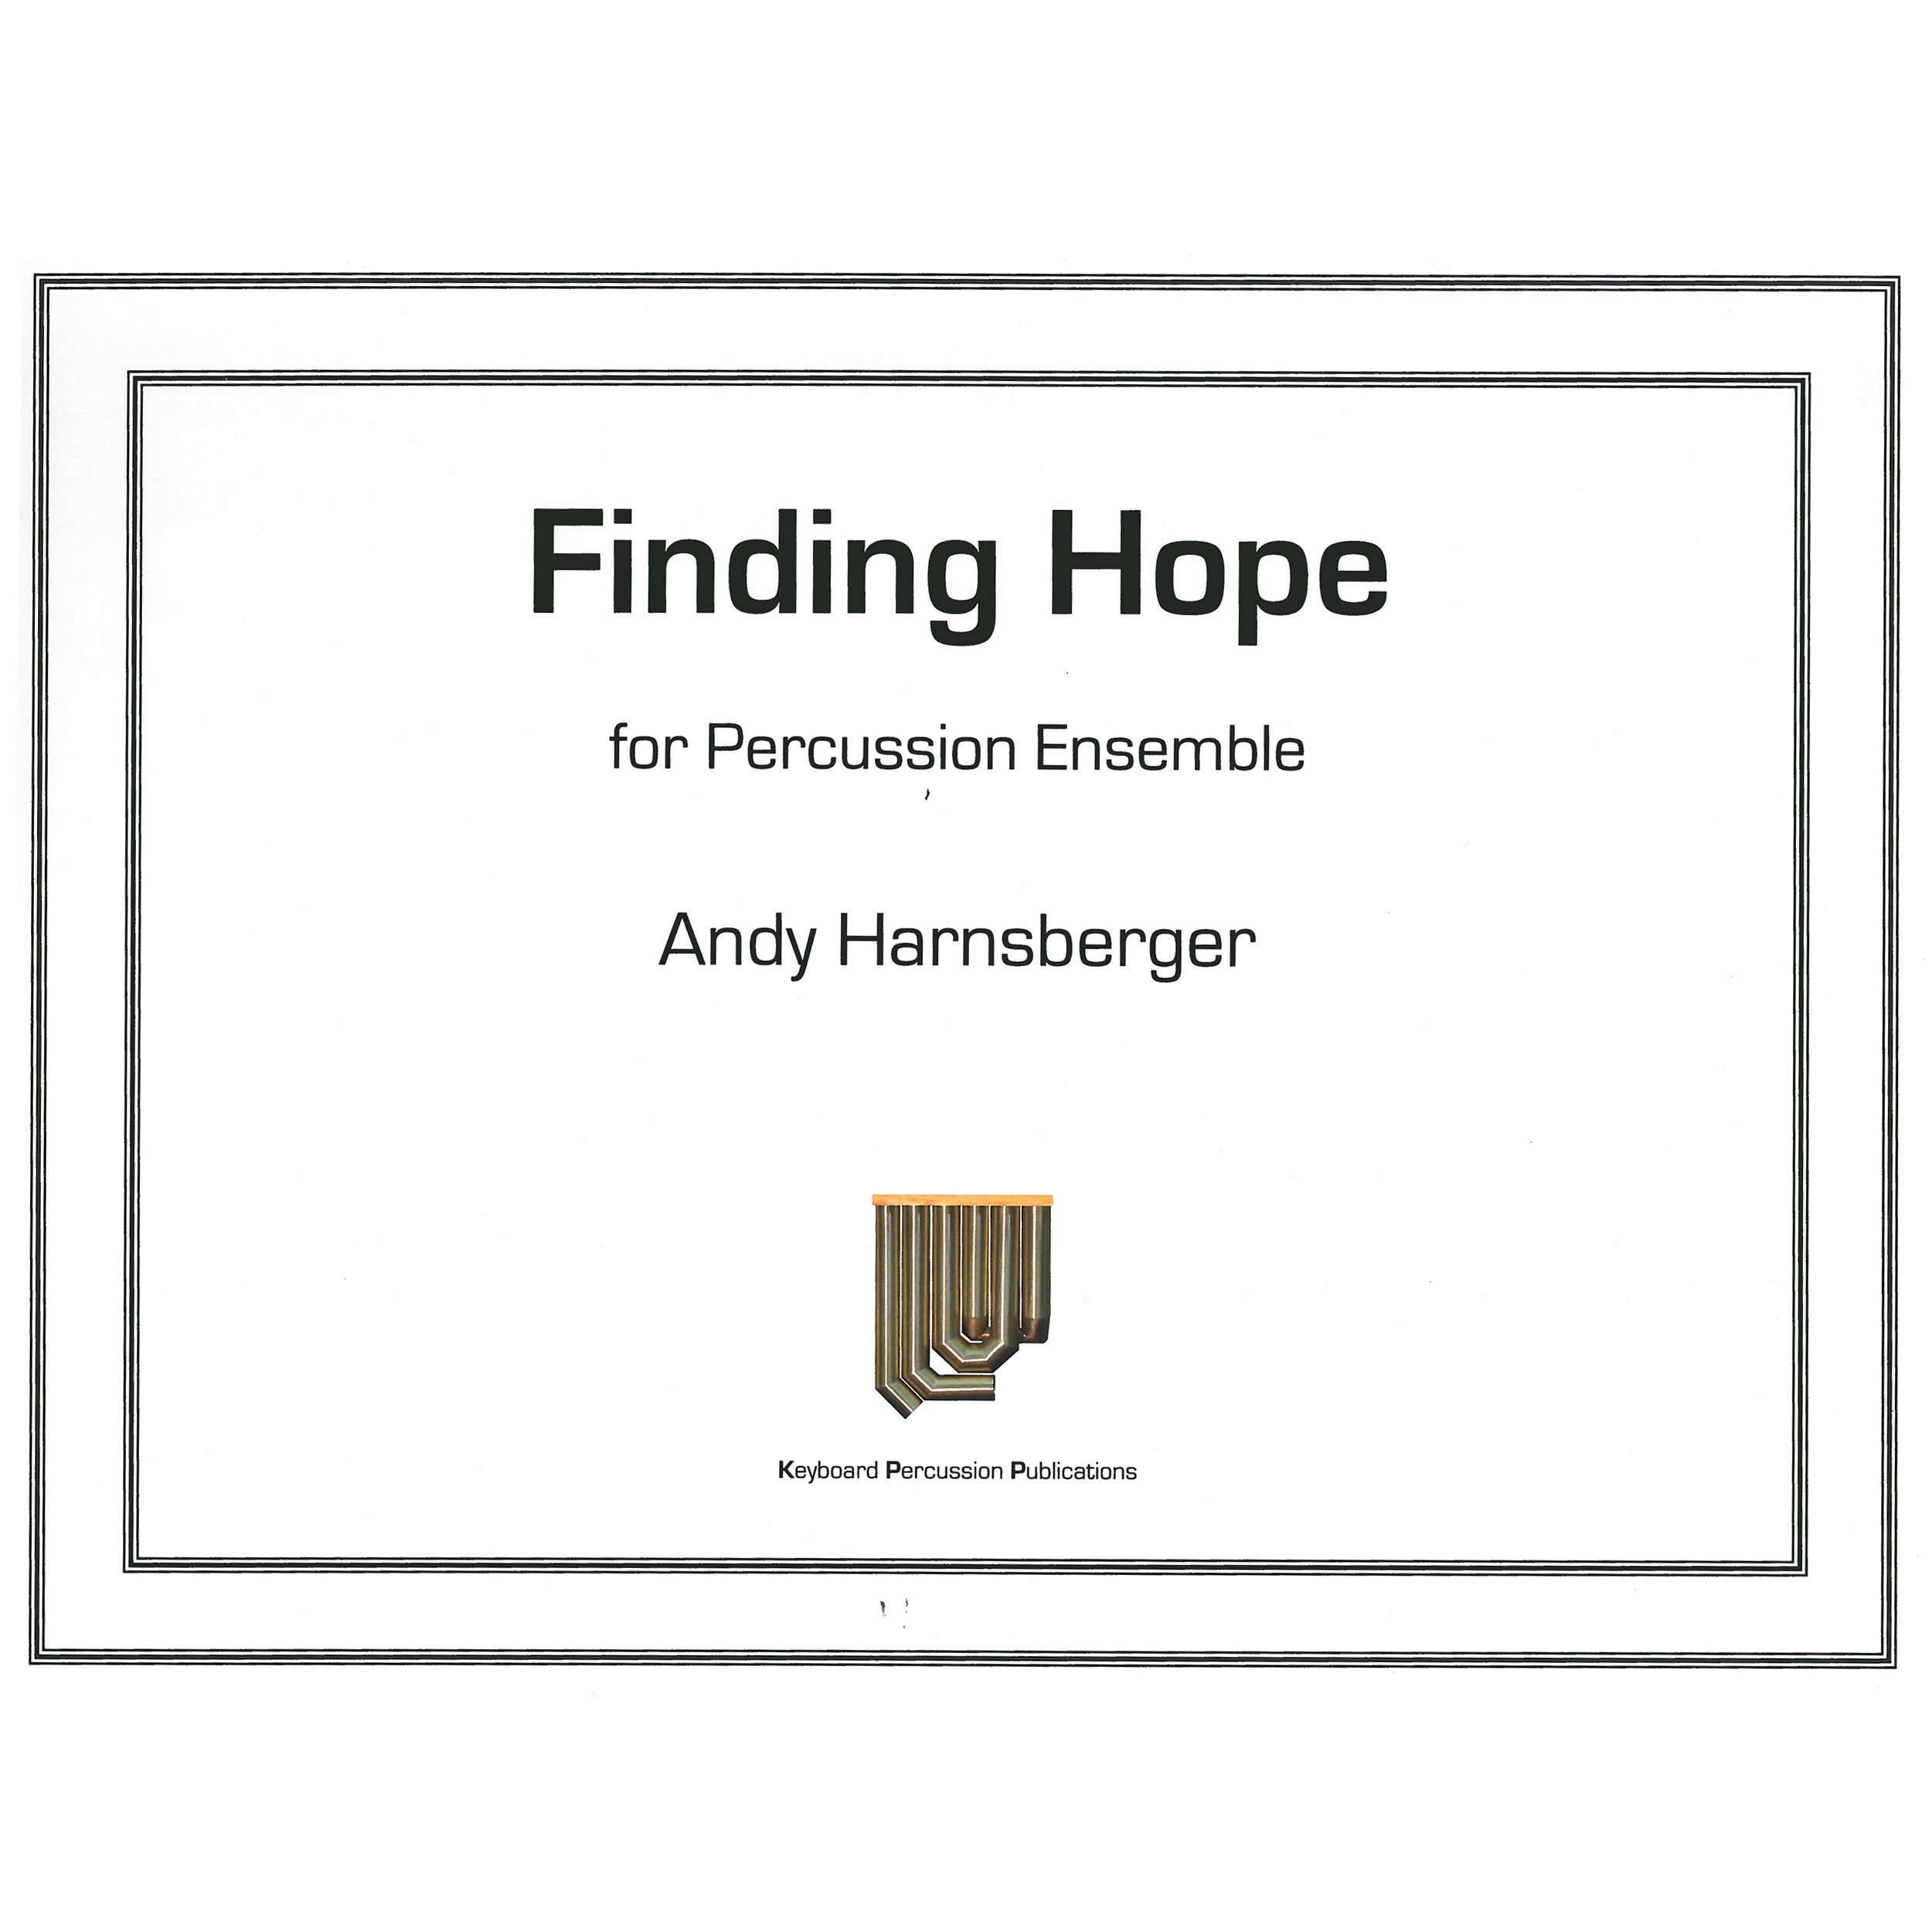 Finding Hope by Andy Harnsberger